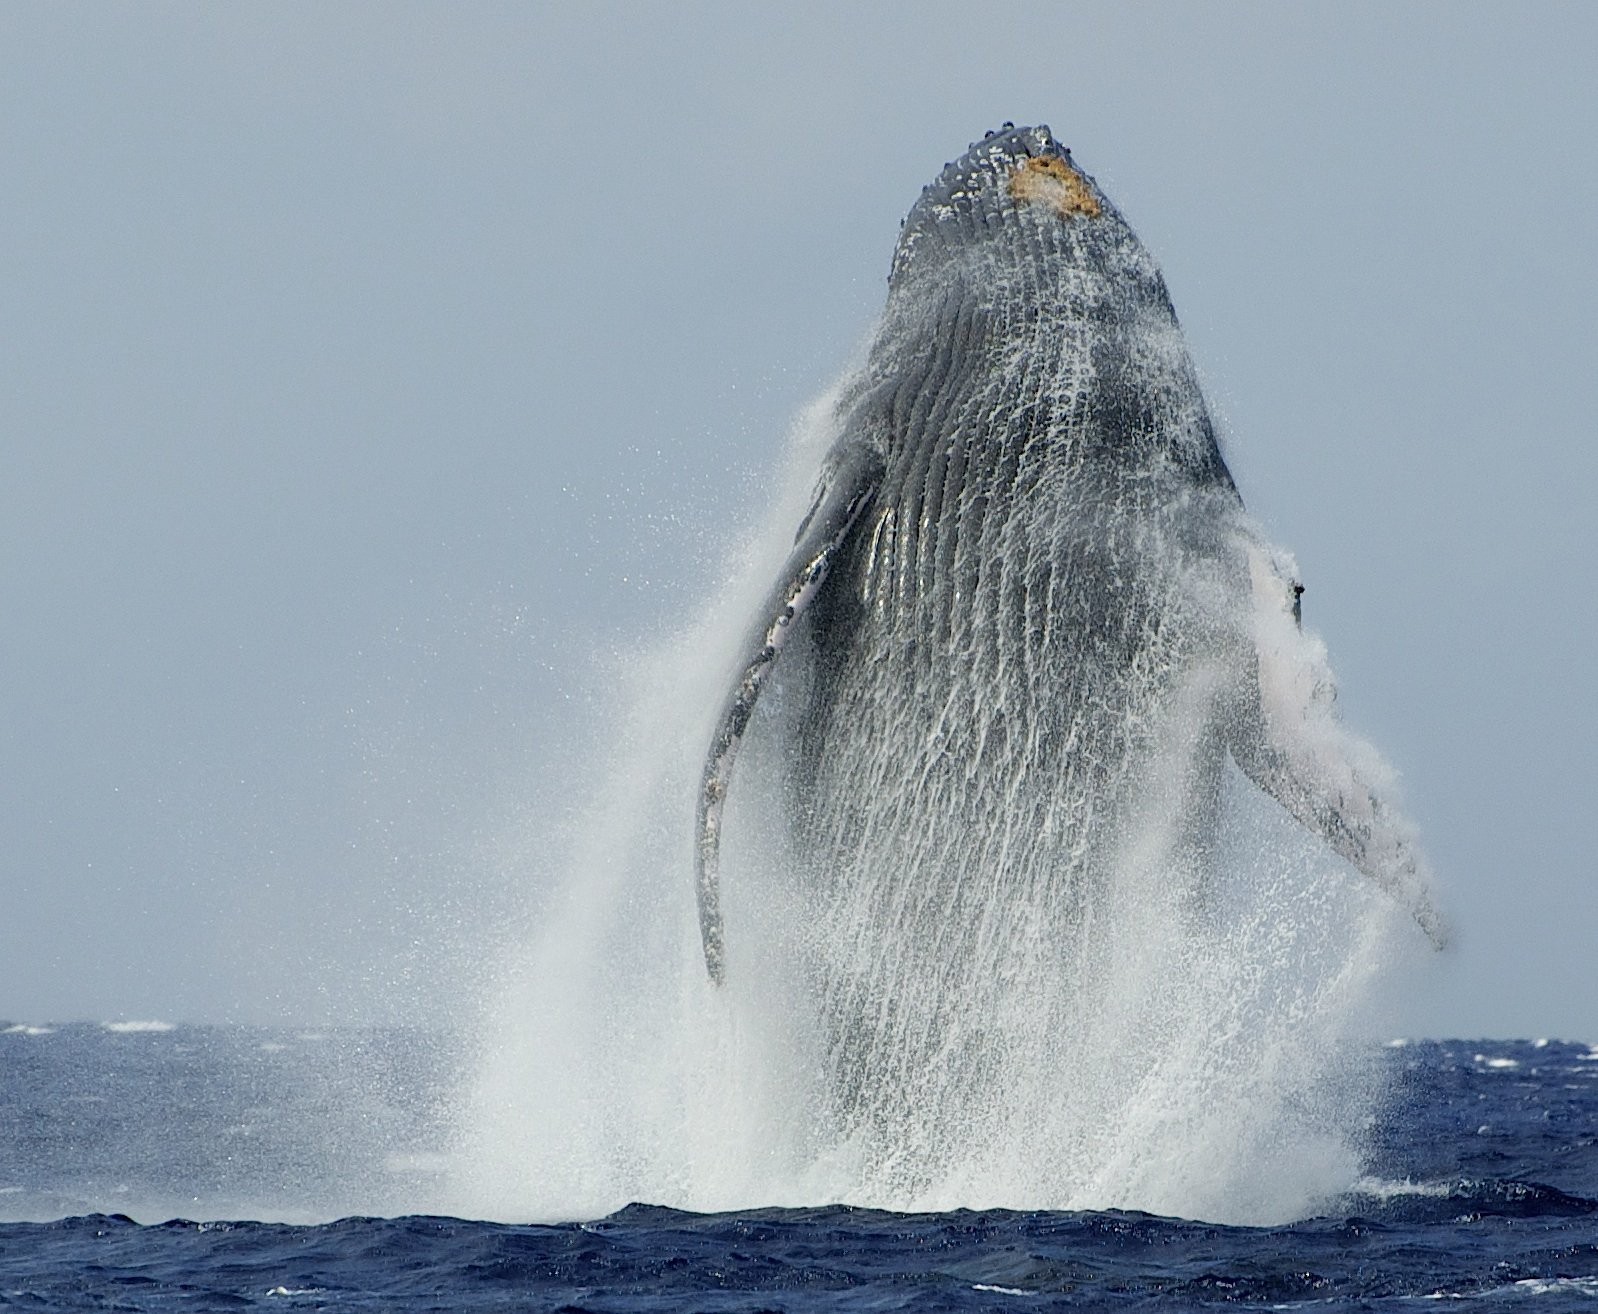 Hop on one of our Maui whale watching tours.